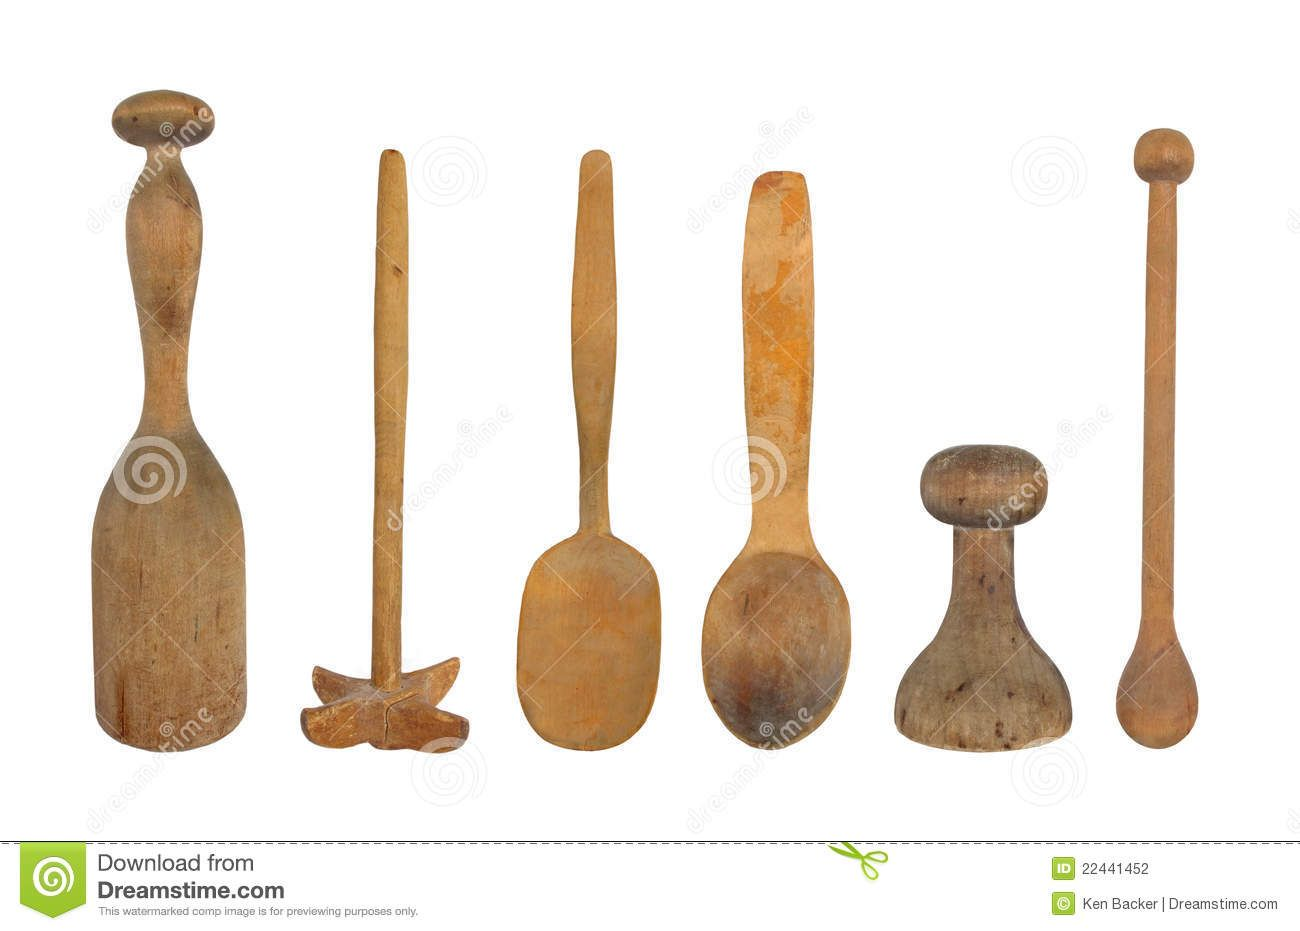 Five Vintage Wooden Kitchen Utensils Including A Potato Masher, Spoons,  Mortars And Spurtle For